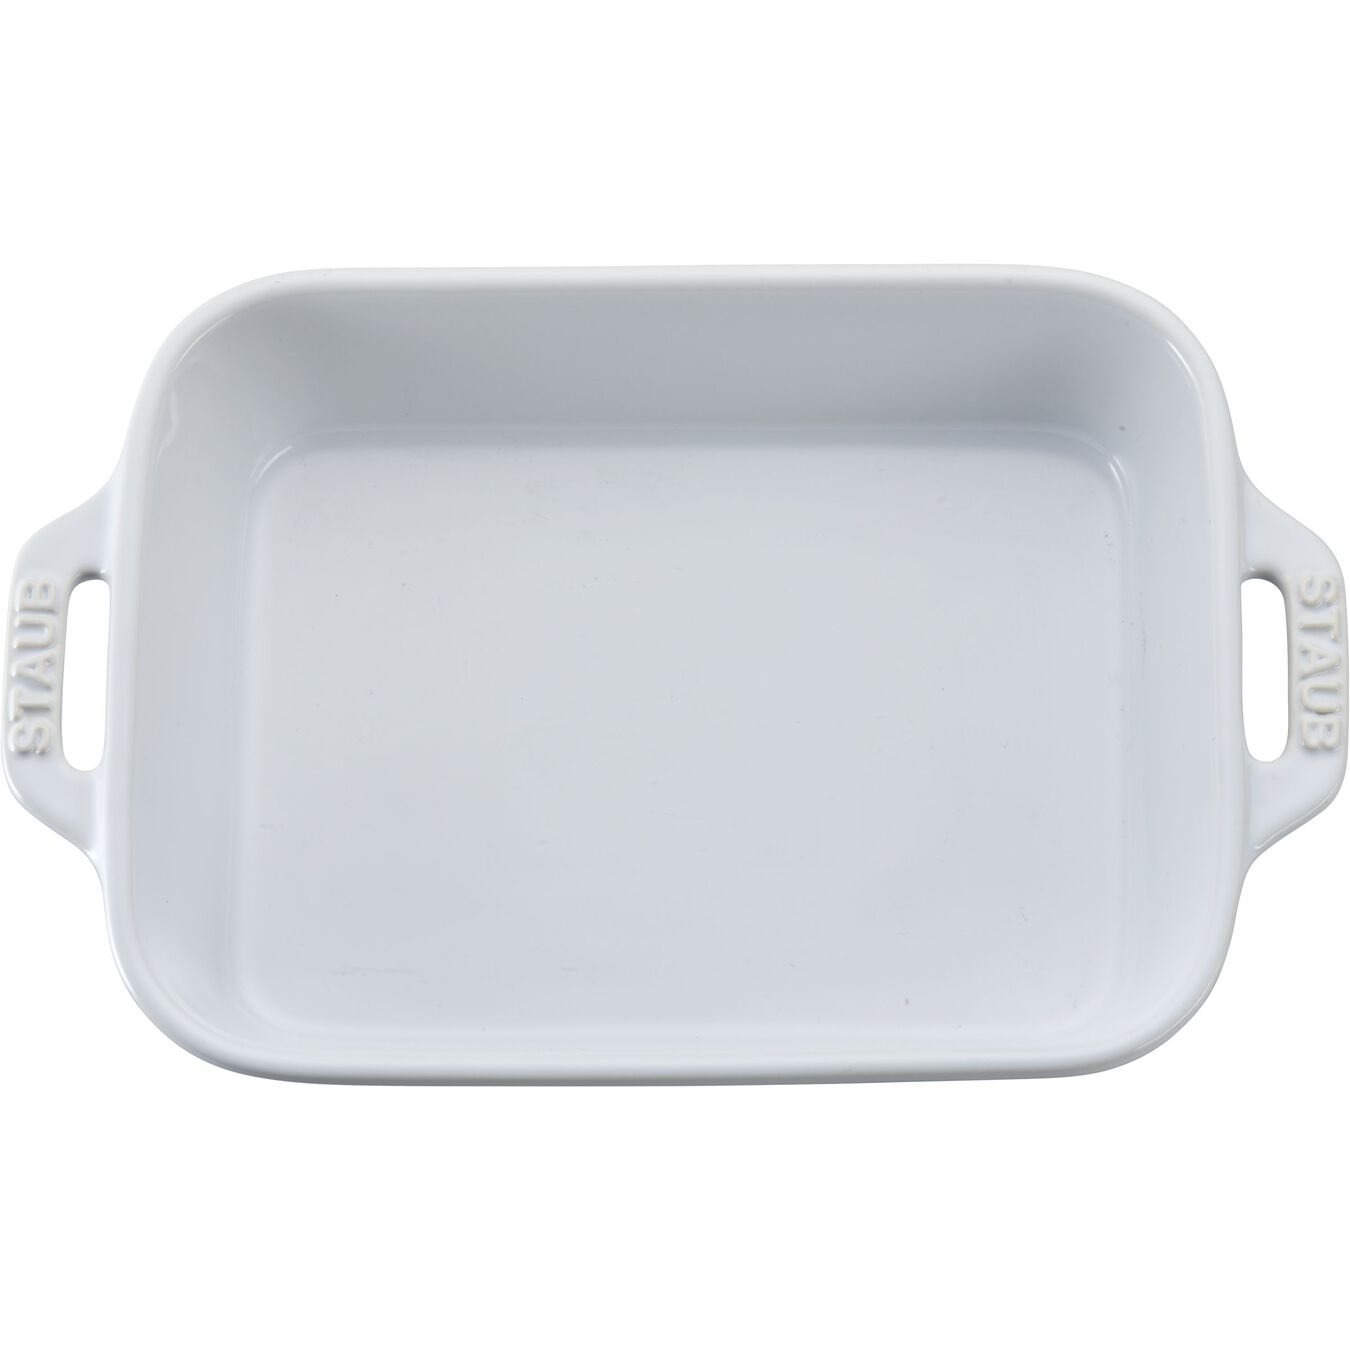 8-inch, rectangular, Special shape bakeware, white,,large 2